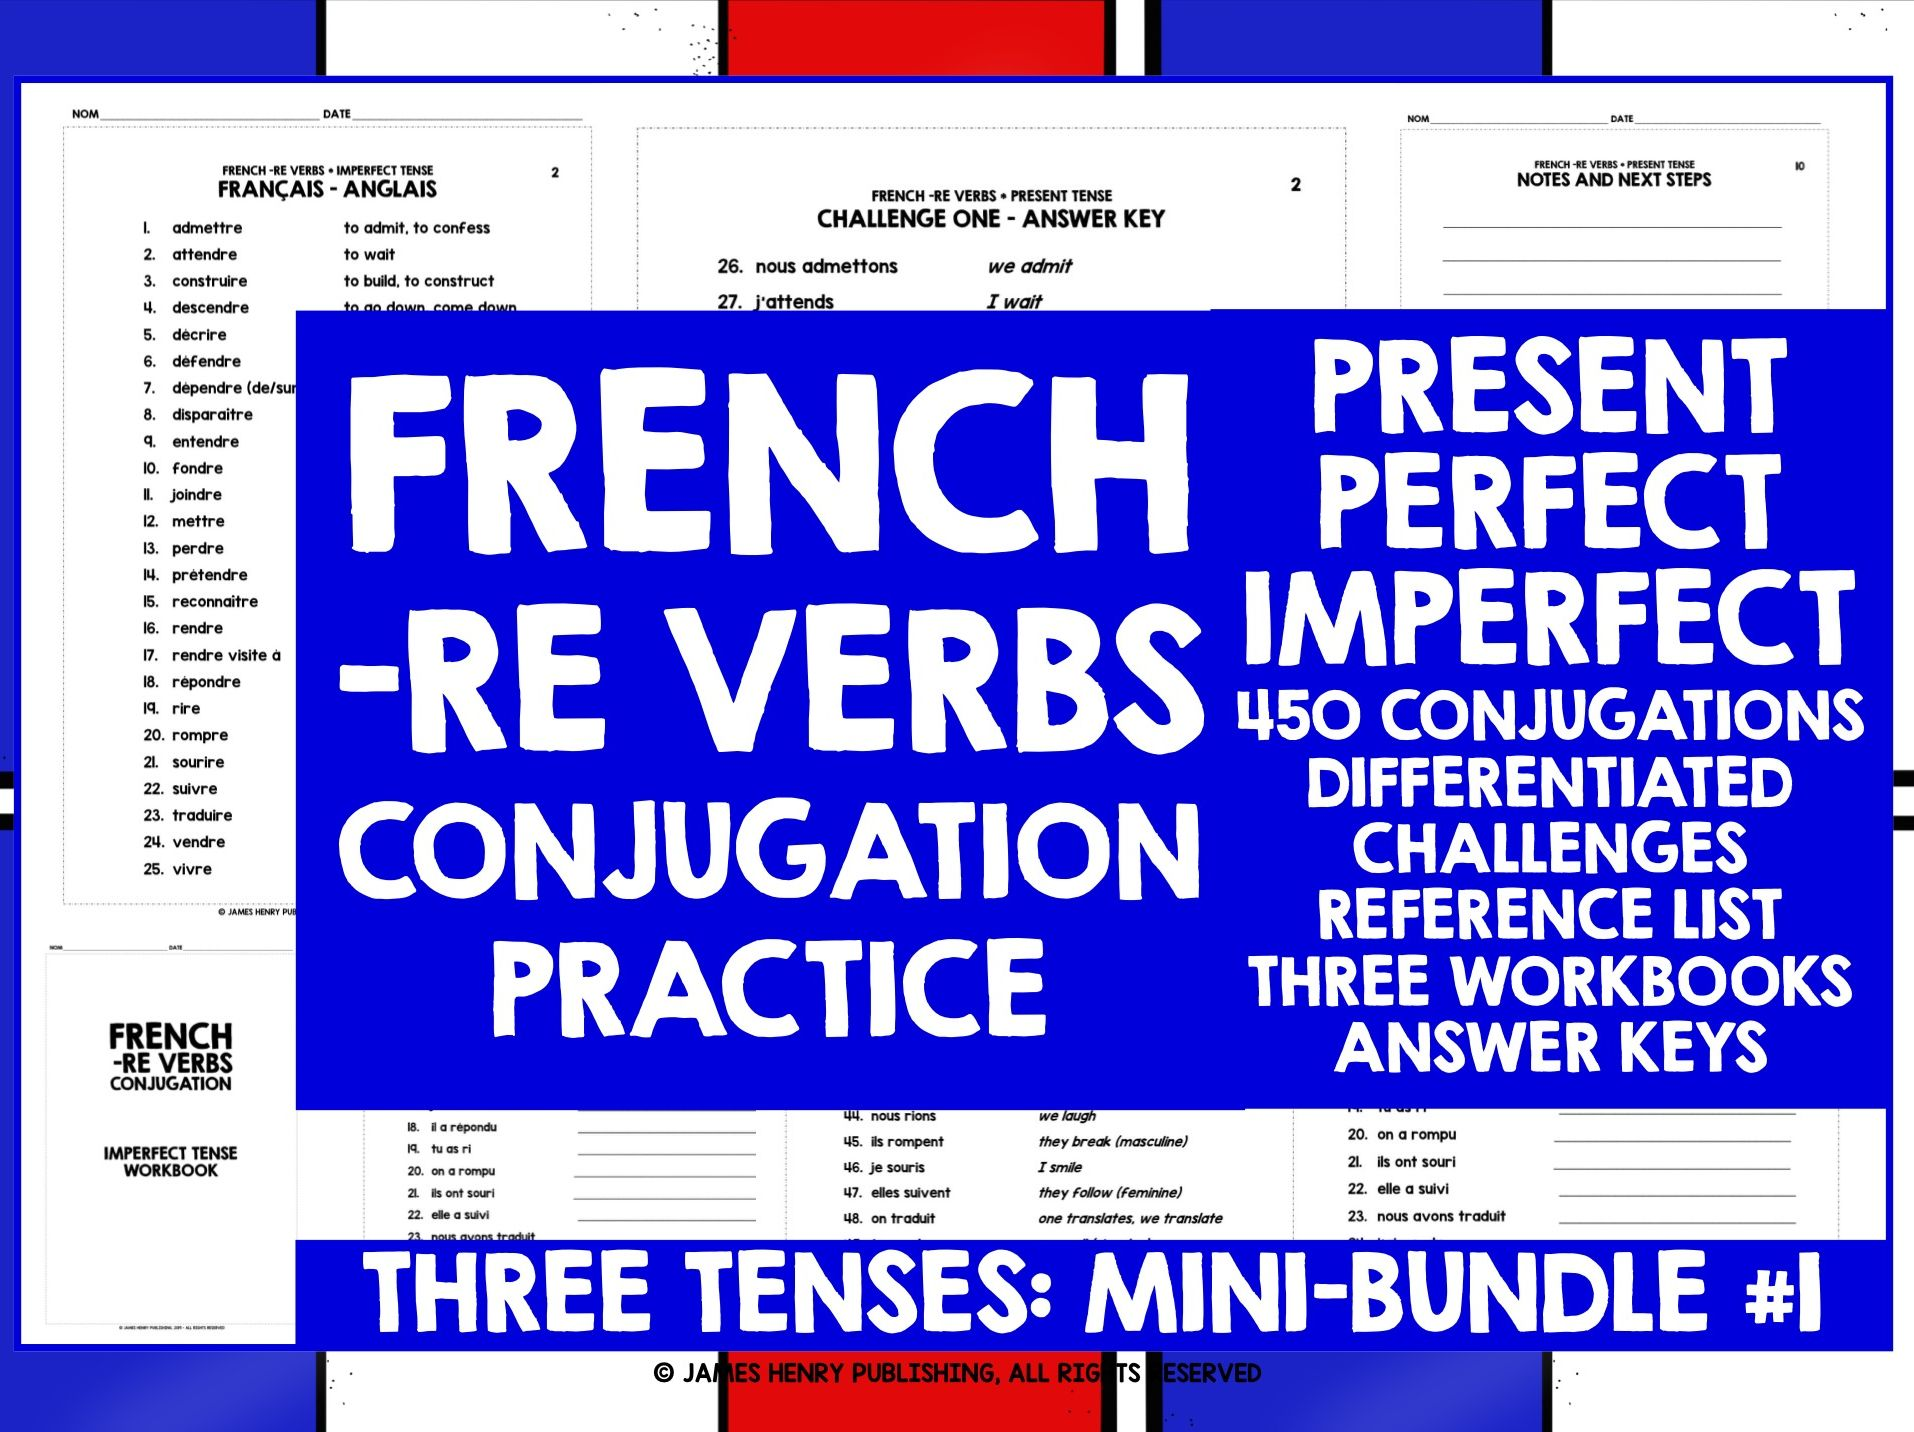 FRENCH -RE VERBS CONJUGATION MINI-BUNDLE #1